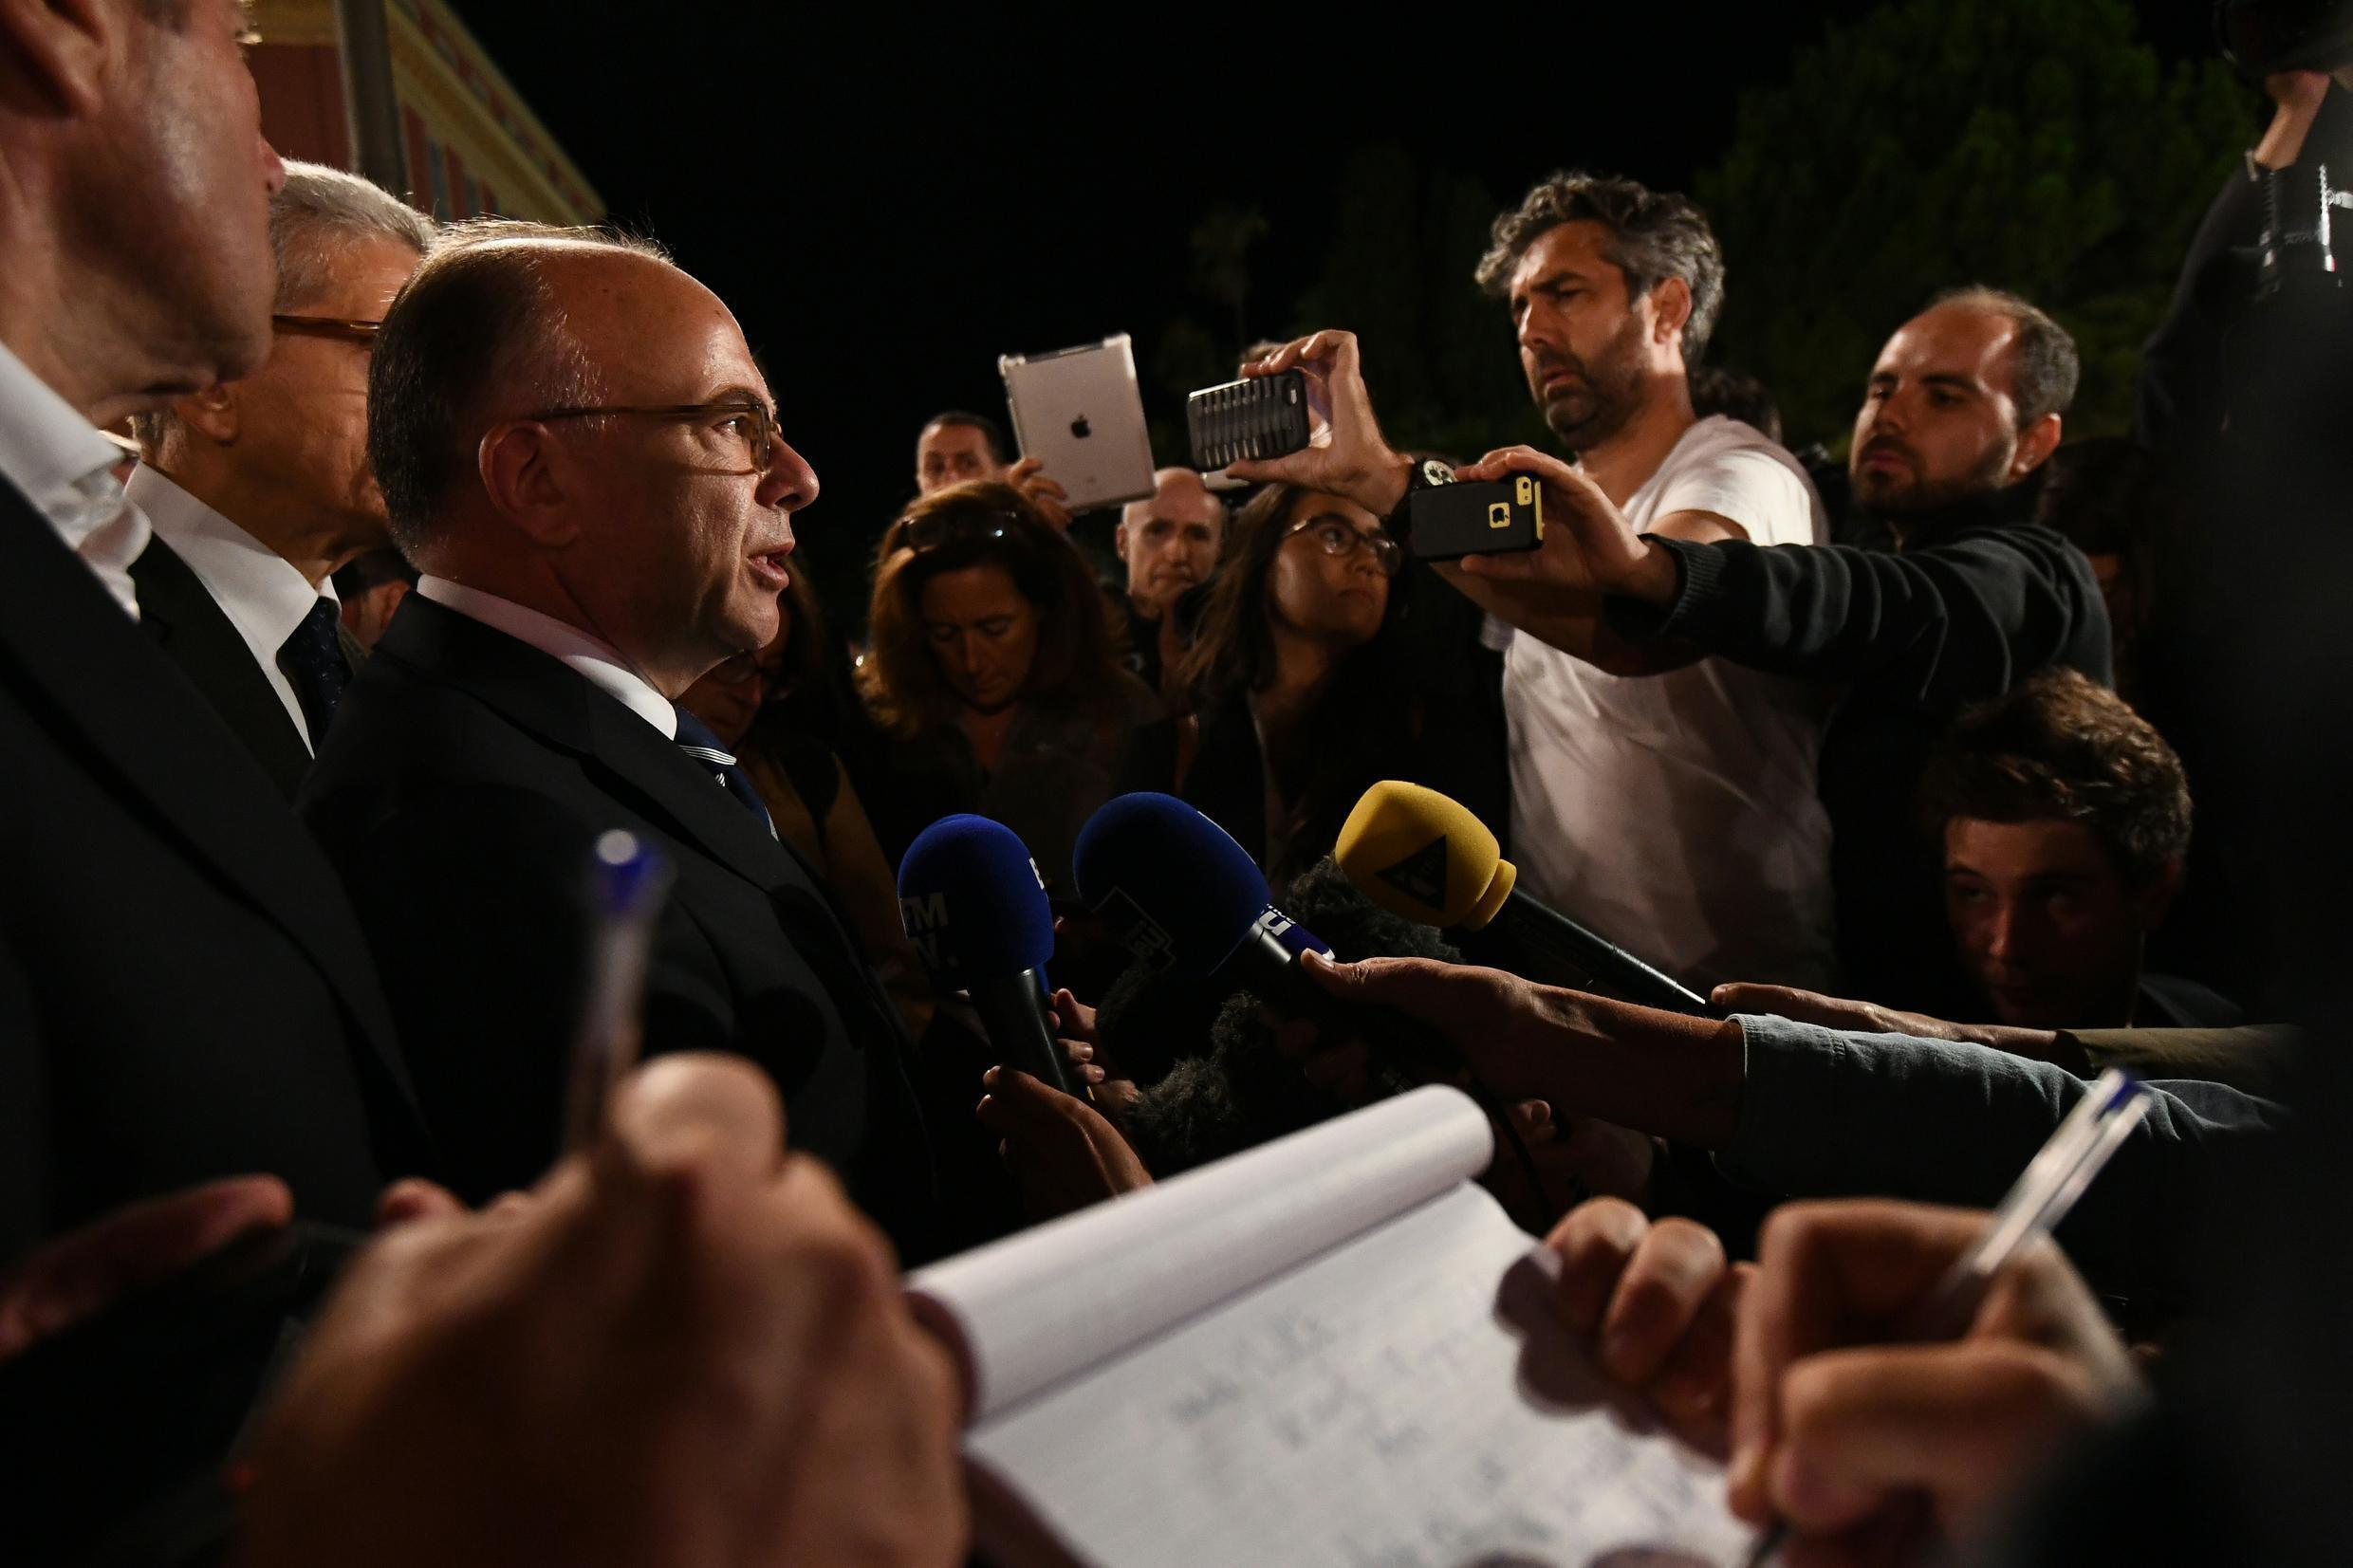 French Interior Minister Bernard Cazeneuve (2nd L) speaks to the media in Nice early on Friday as he visits the area where a truck ploughed into a crowd of people during Bastille Day celebrations.